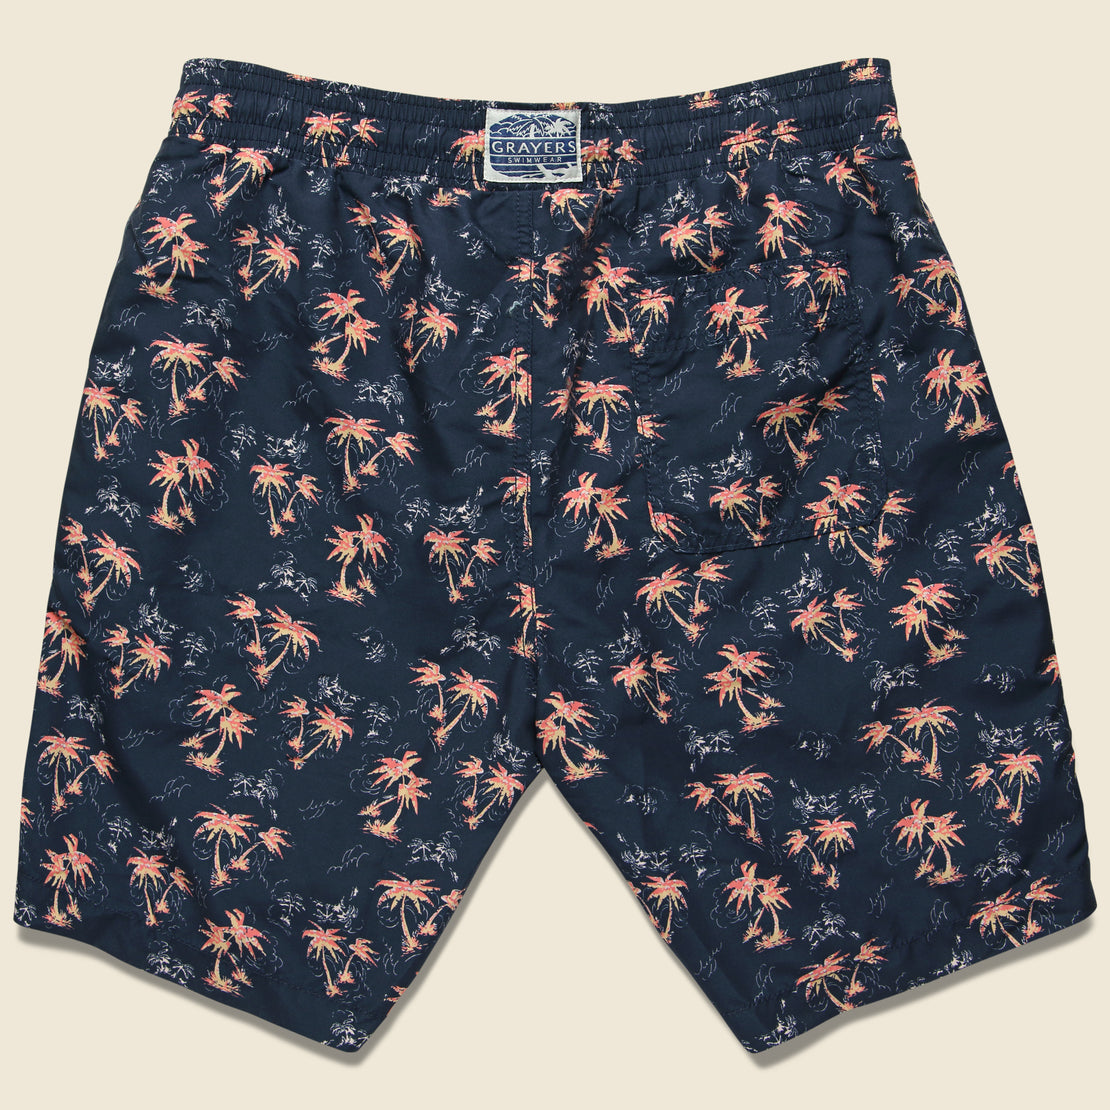 Burning Palm Swim Trunk - Carbon Spice Coral